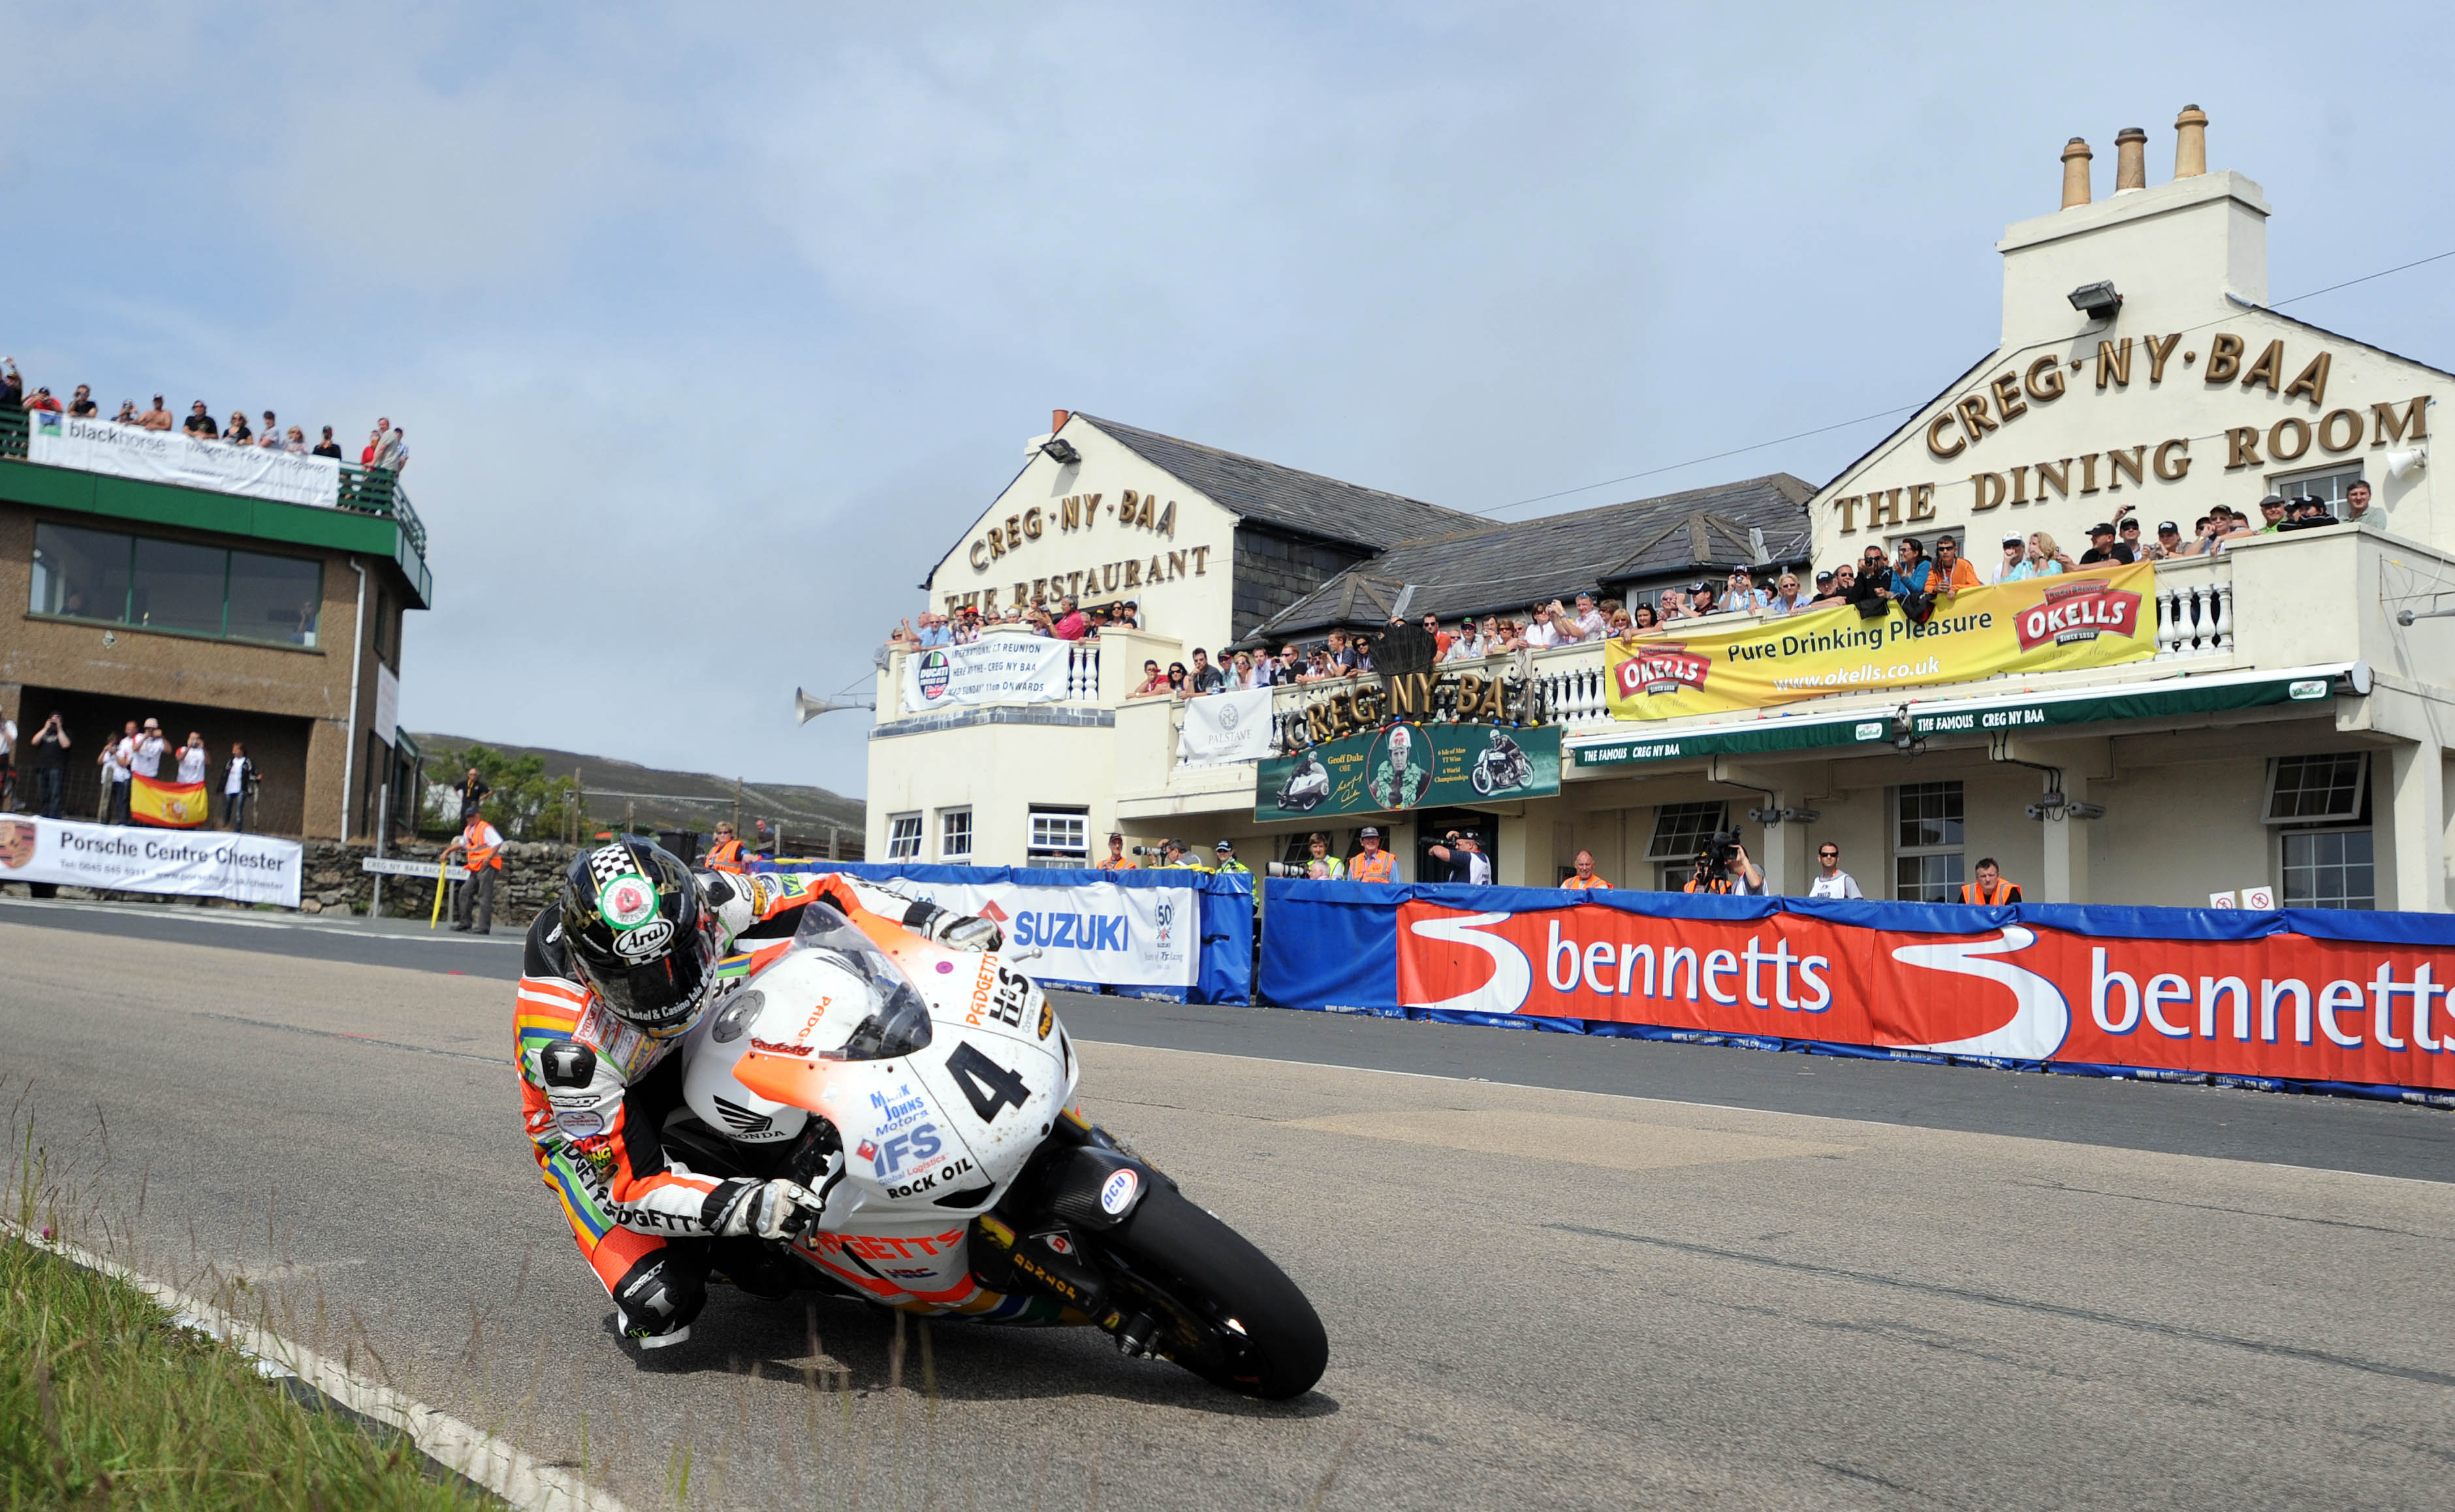 Ian Hutchinson takes opening race at 2010 Isle of Man TT